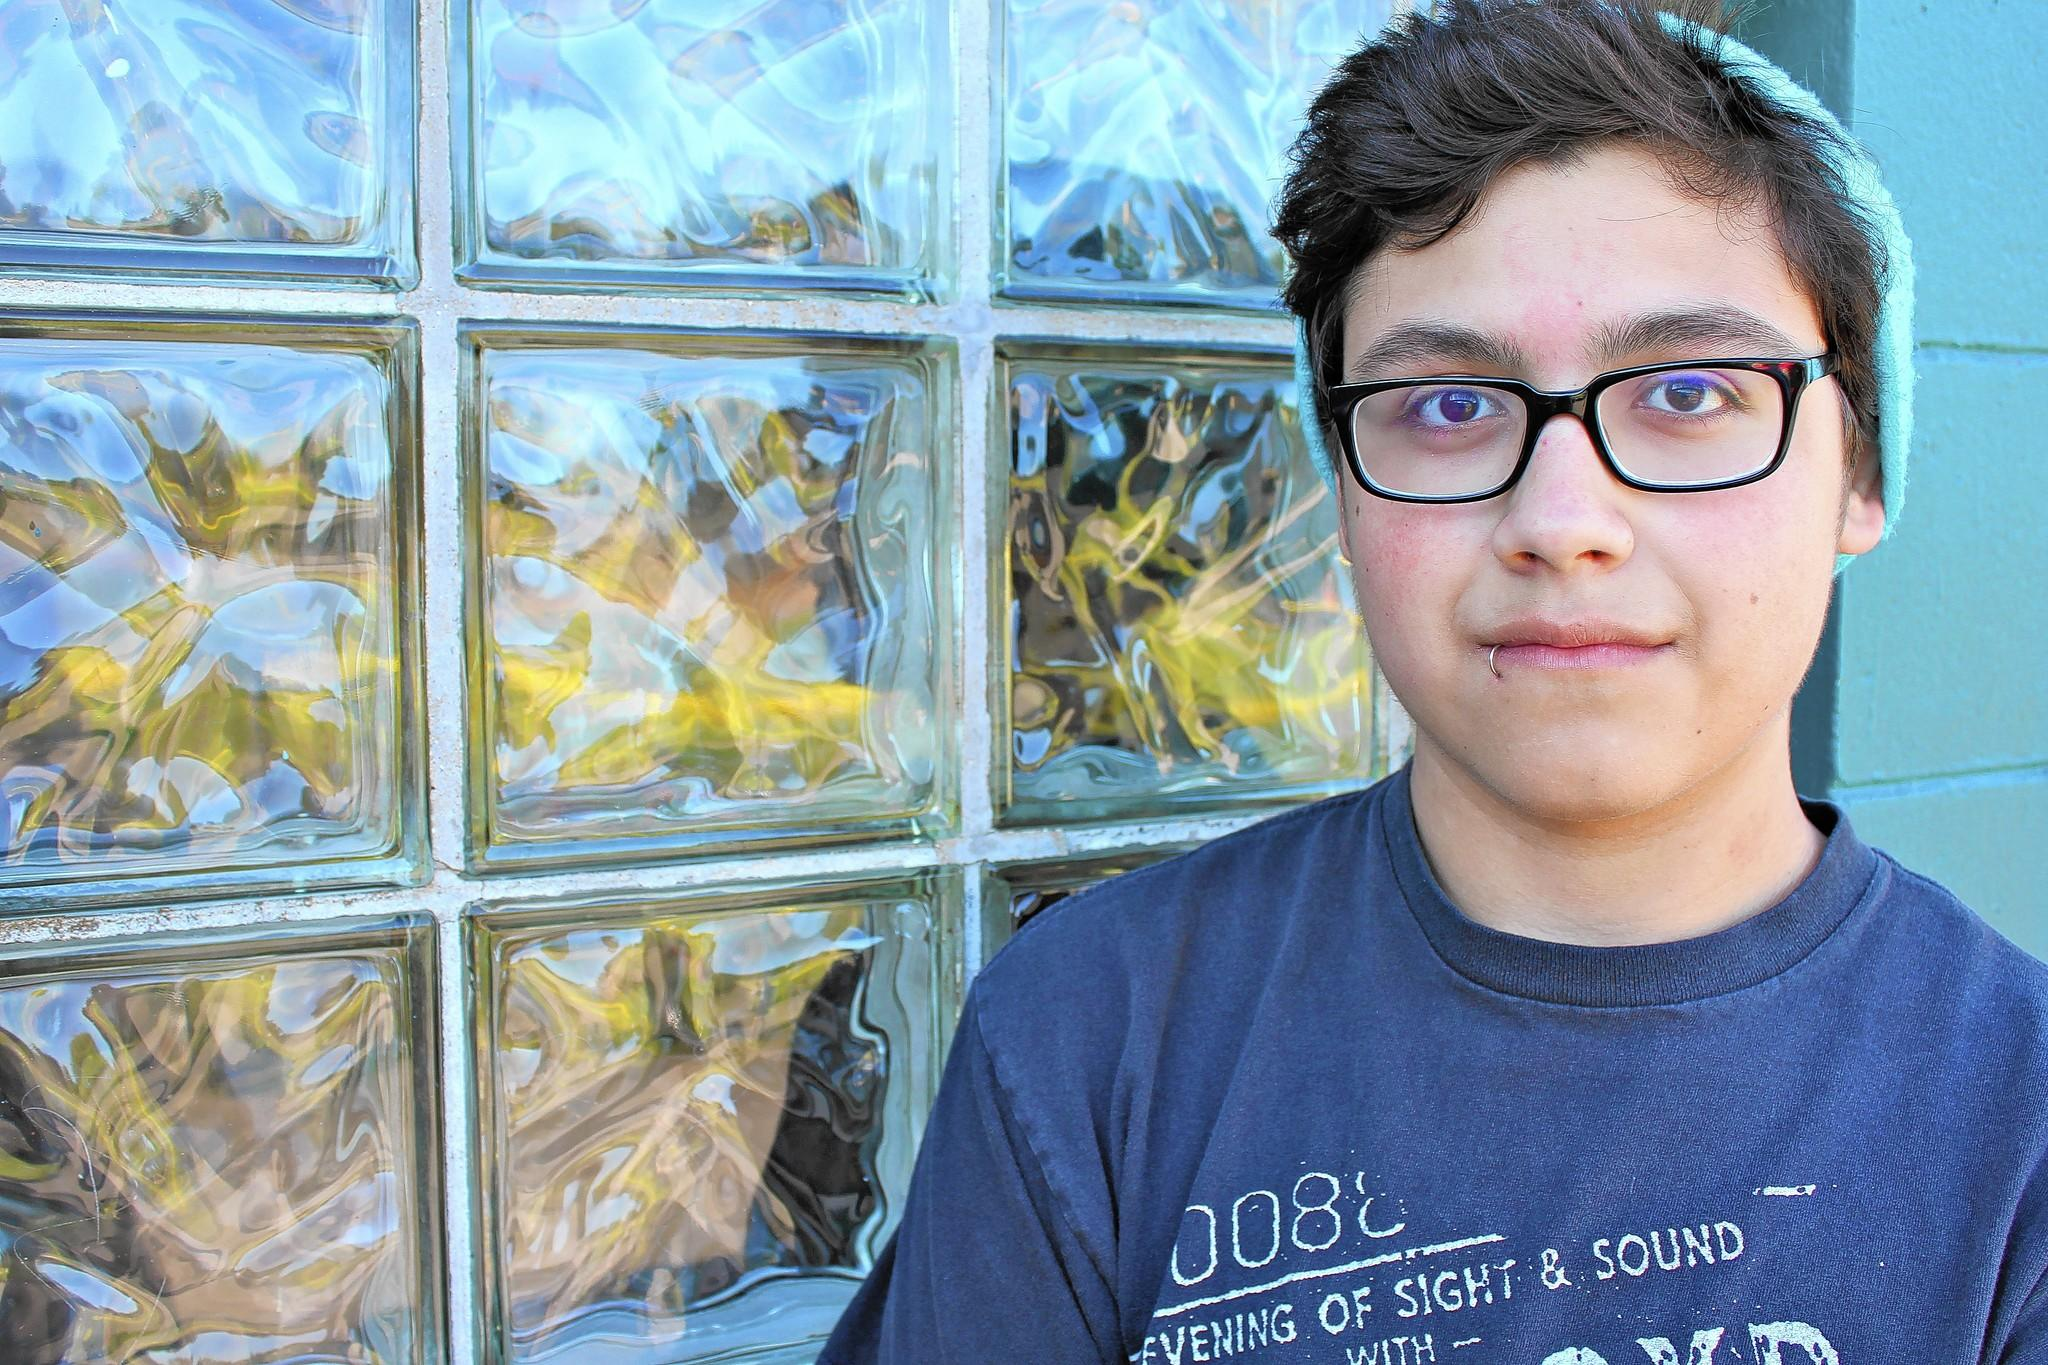 """NTHS Alfonso Gonzalez, 16, lives in Glencoe and is going into his junior year at New Trier. He said he remembers his transition into New Trier as a bit nerve racking. """"I was nervous going into New Trier because I only knew people from my community, Glencoe,"""" he said. """"It was a big change from freshman year to sophomore because it was a different school, a different campus. We were involved with older kids. It was just bigger."""""""